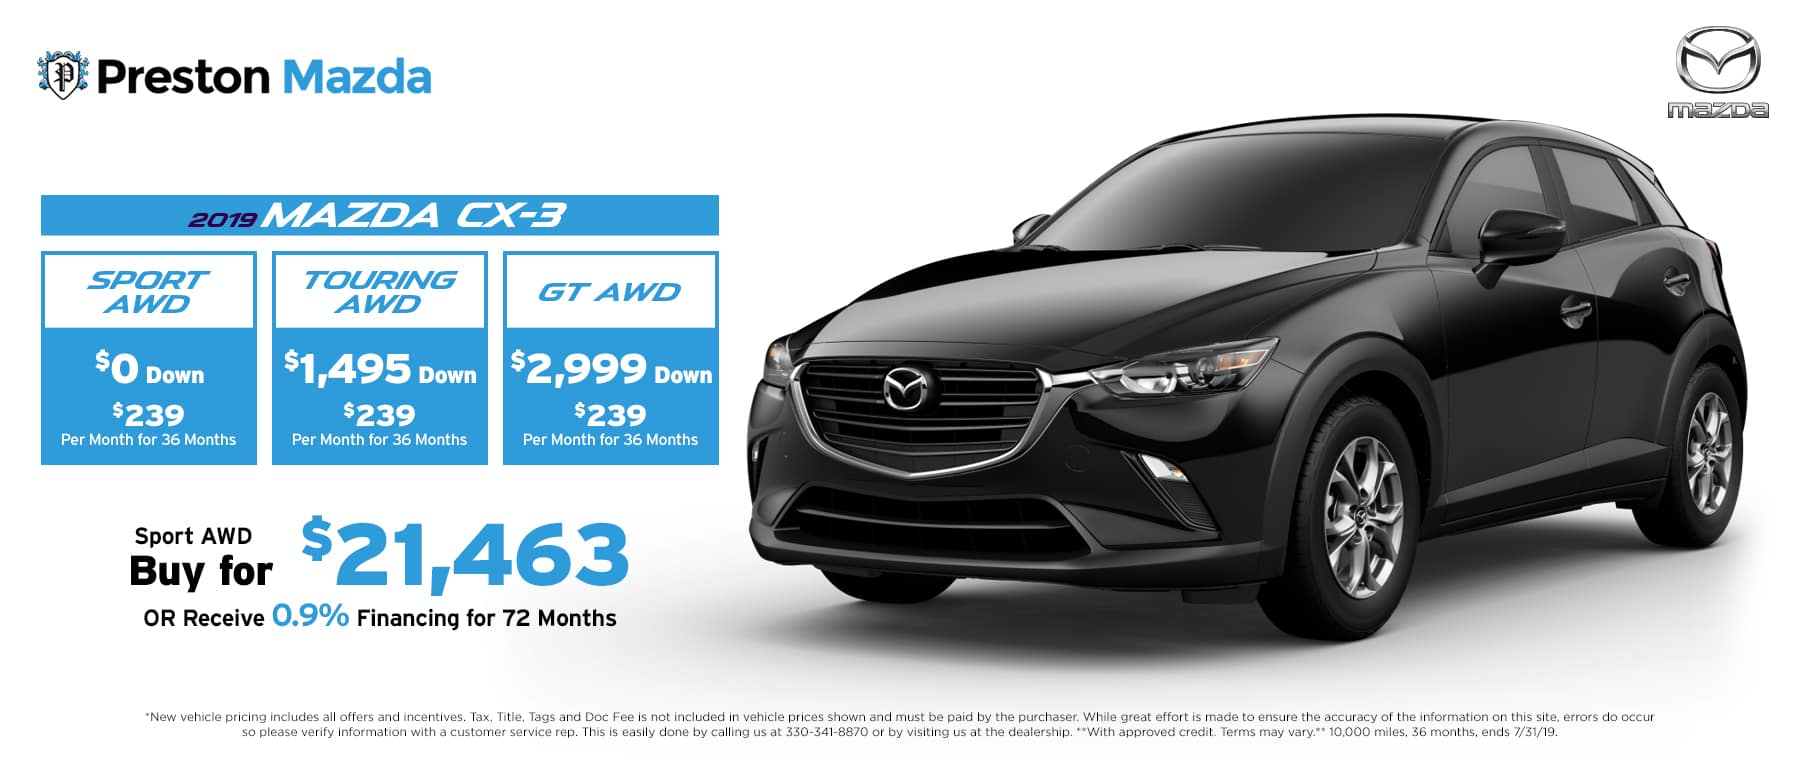 July special on the 2019 Mazda CX-3